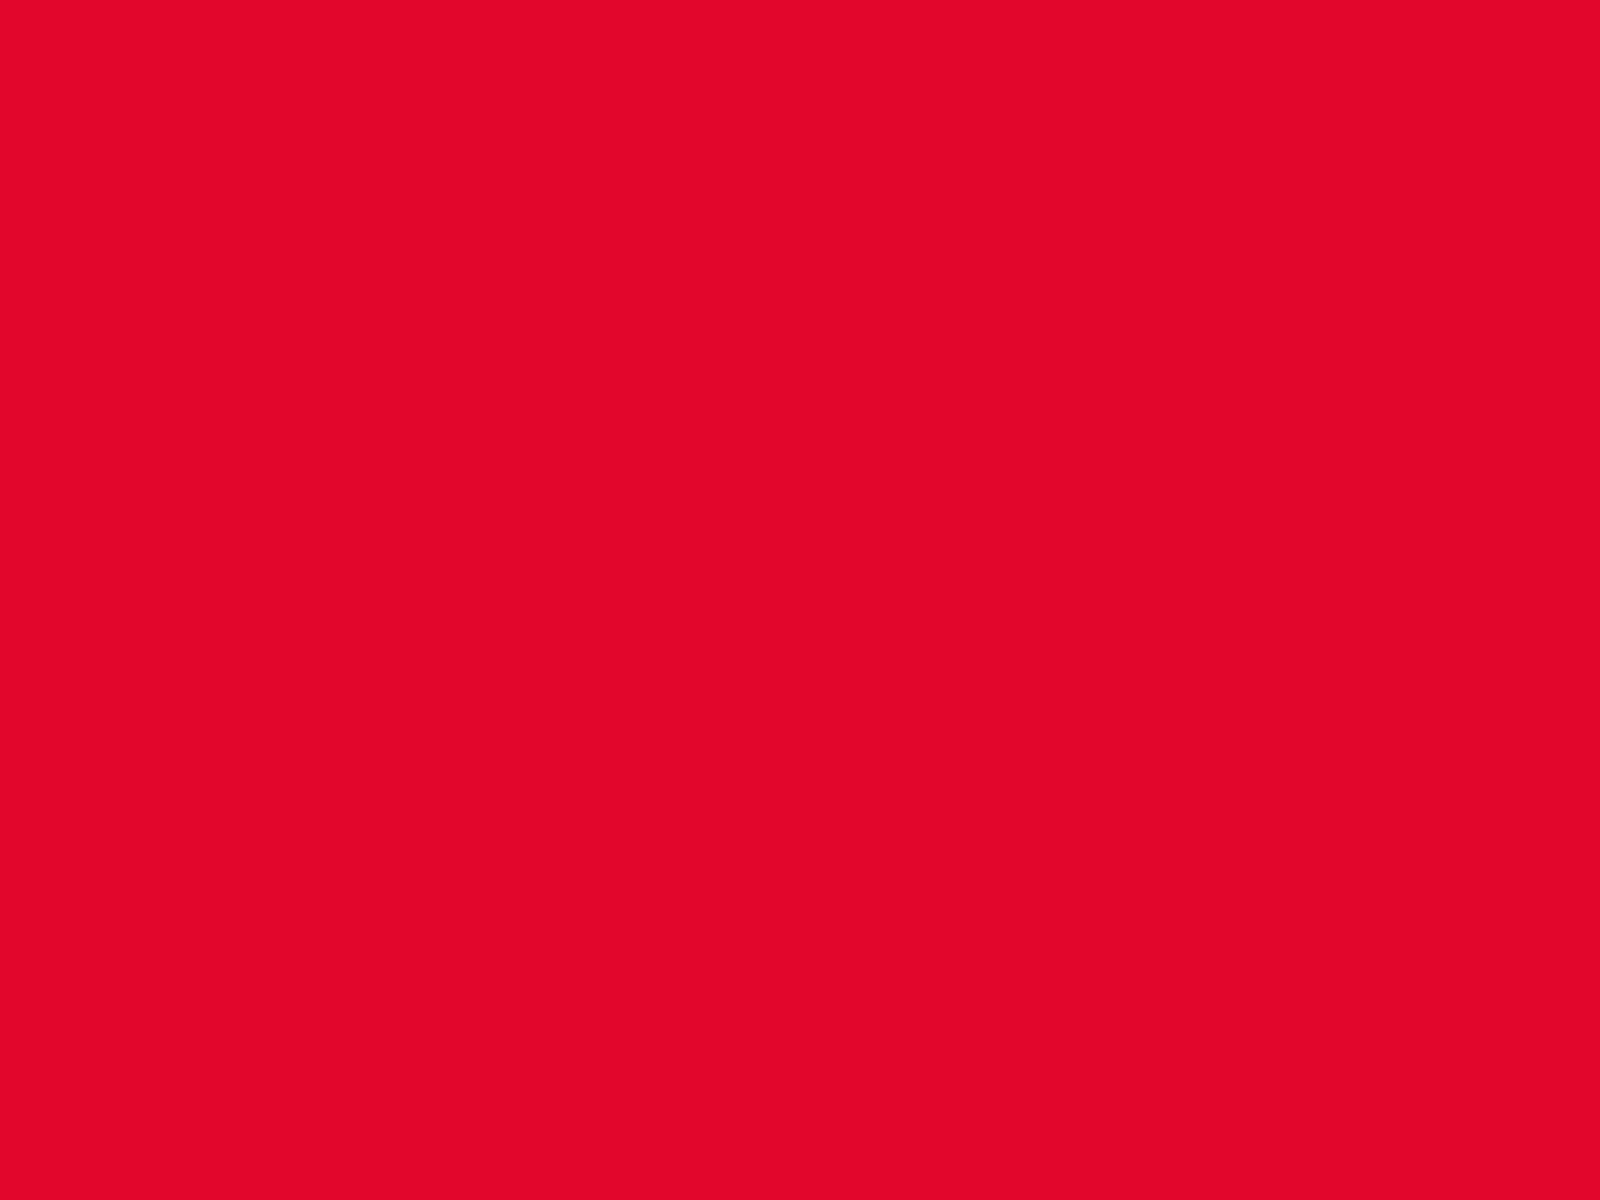 1600x1200 Medium Candy Apple Red Solid Color Background